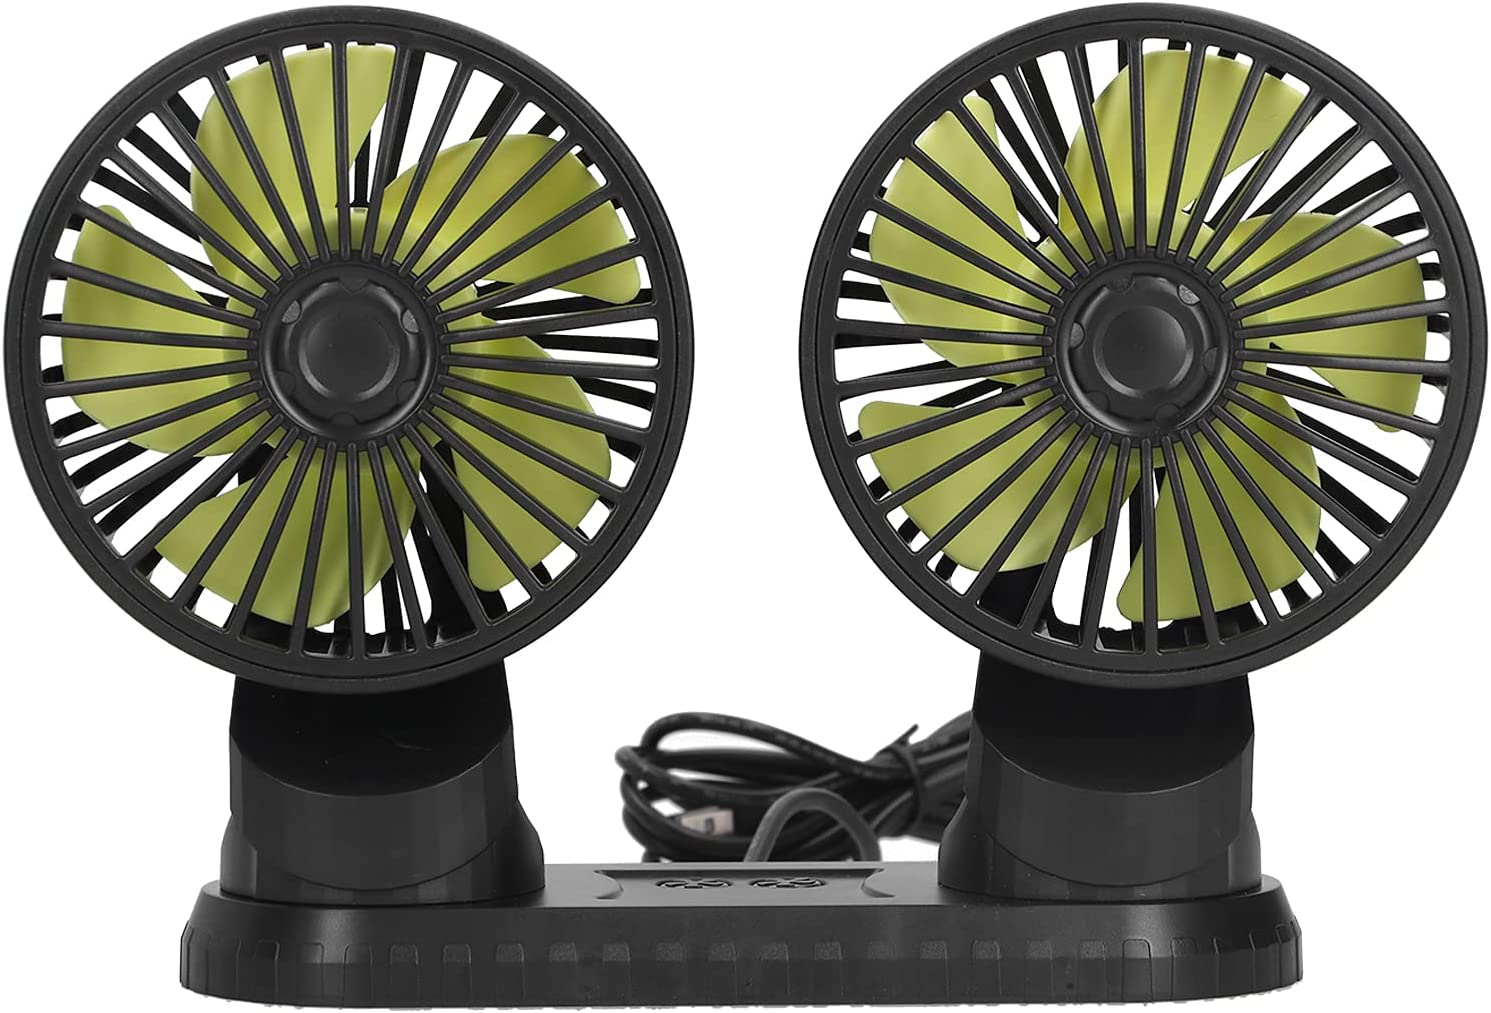 Dual Head Car Fan 12V Dual‑head ABS Blades 3 PP 5 Free shipping Import on posting reviews Vehicle